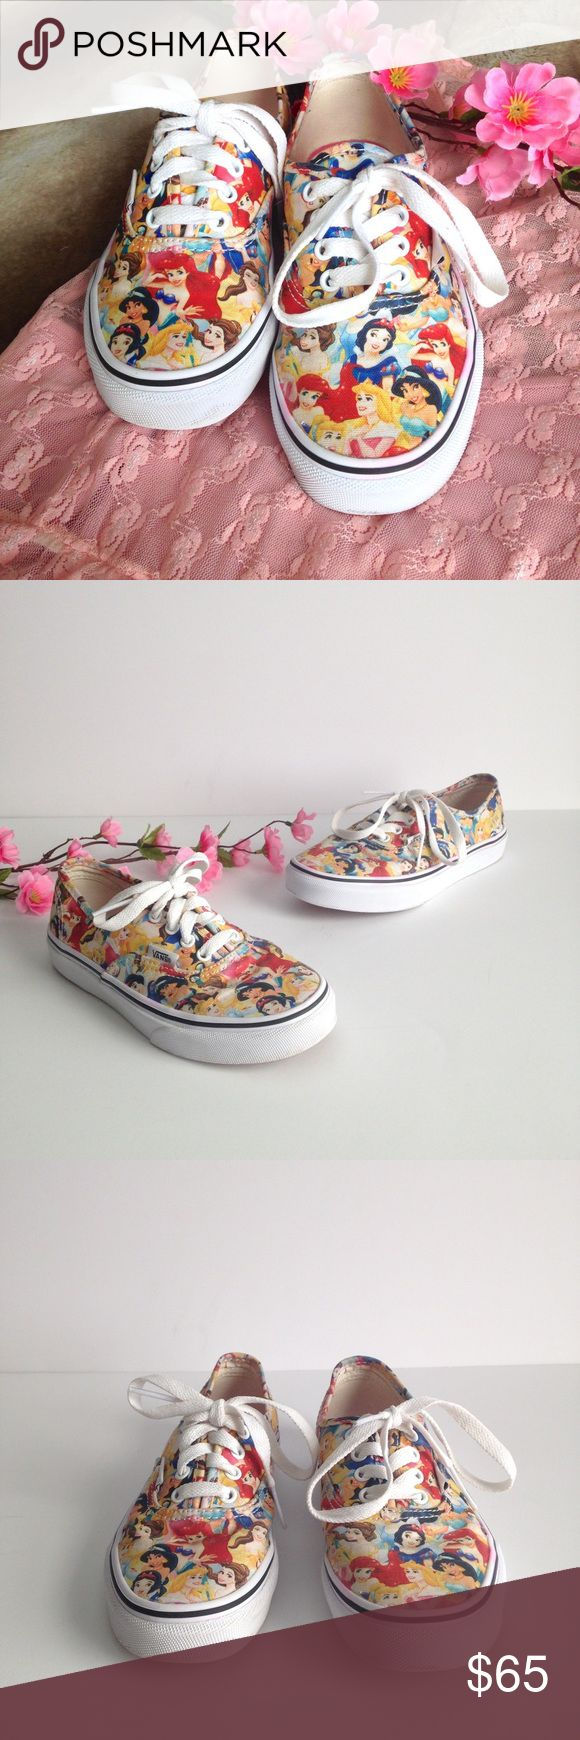 Vans Limited Edition Disney Princesses Sneakers Absolutely adorable little Vans, limited edition collab with Disney! Features all your favorite Disney princesses! In gently used condition, has some minor light pink staining on the midsoles as pictured, not sure what from! Excellent condition otherwise. Size YOUTH 2, insoles measure approximately 8inches. I happily entertain reasonable offers 😊👑 Vans Shoes Sneakers